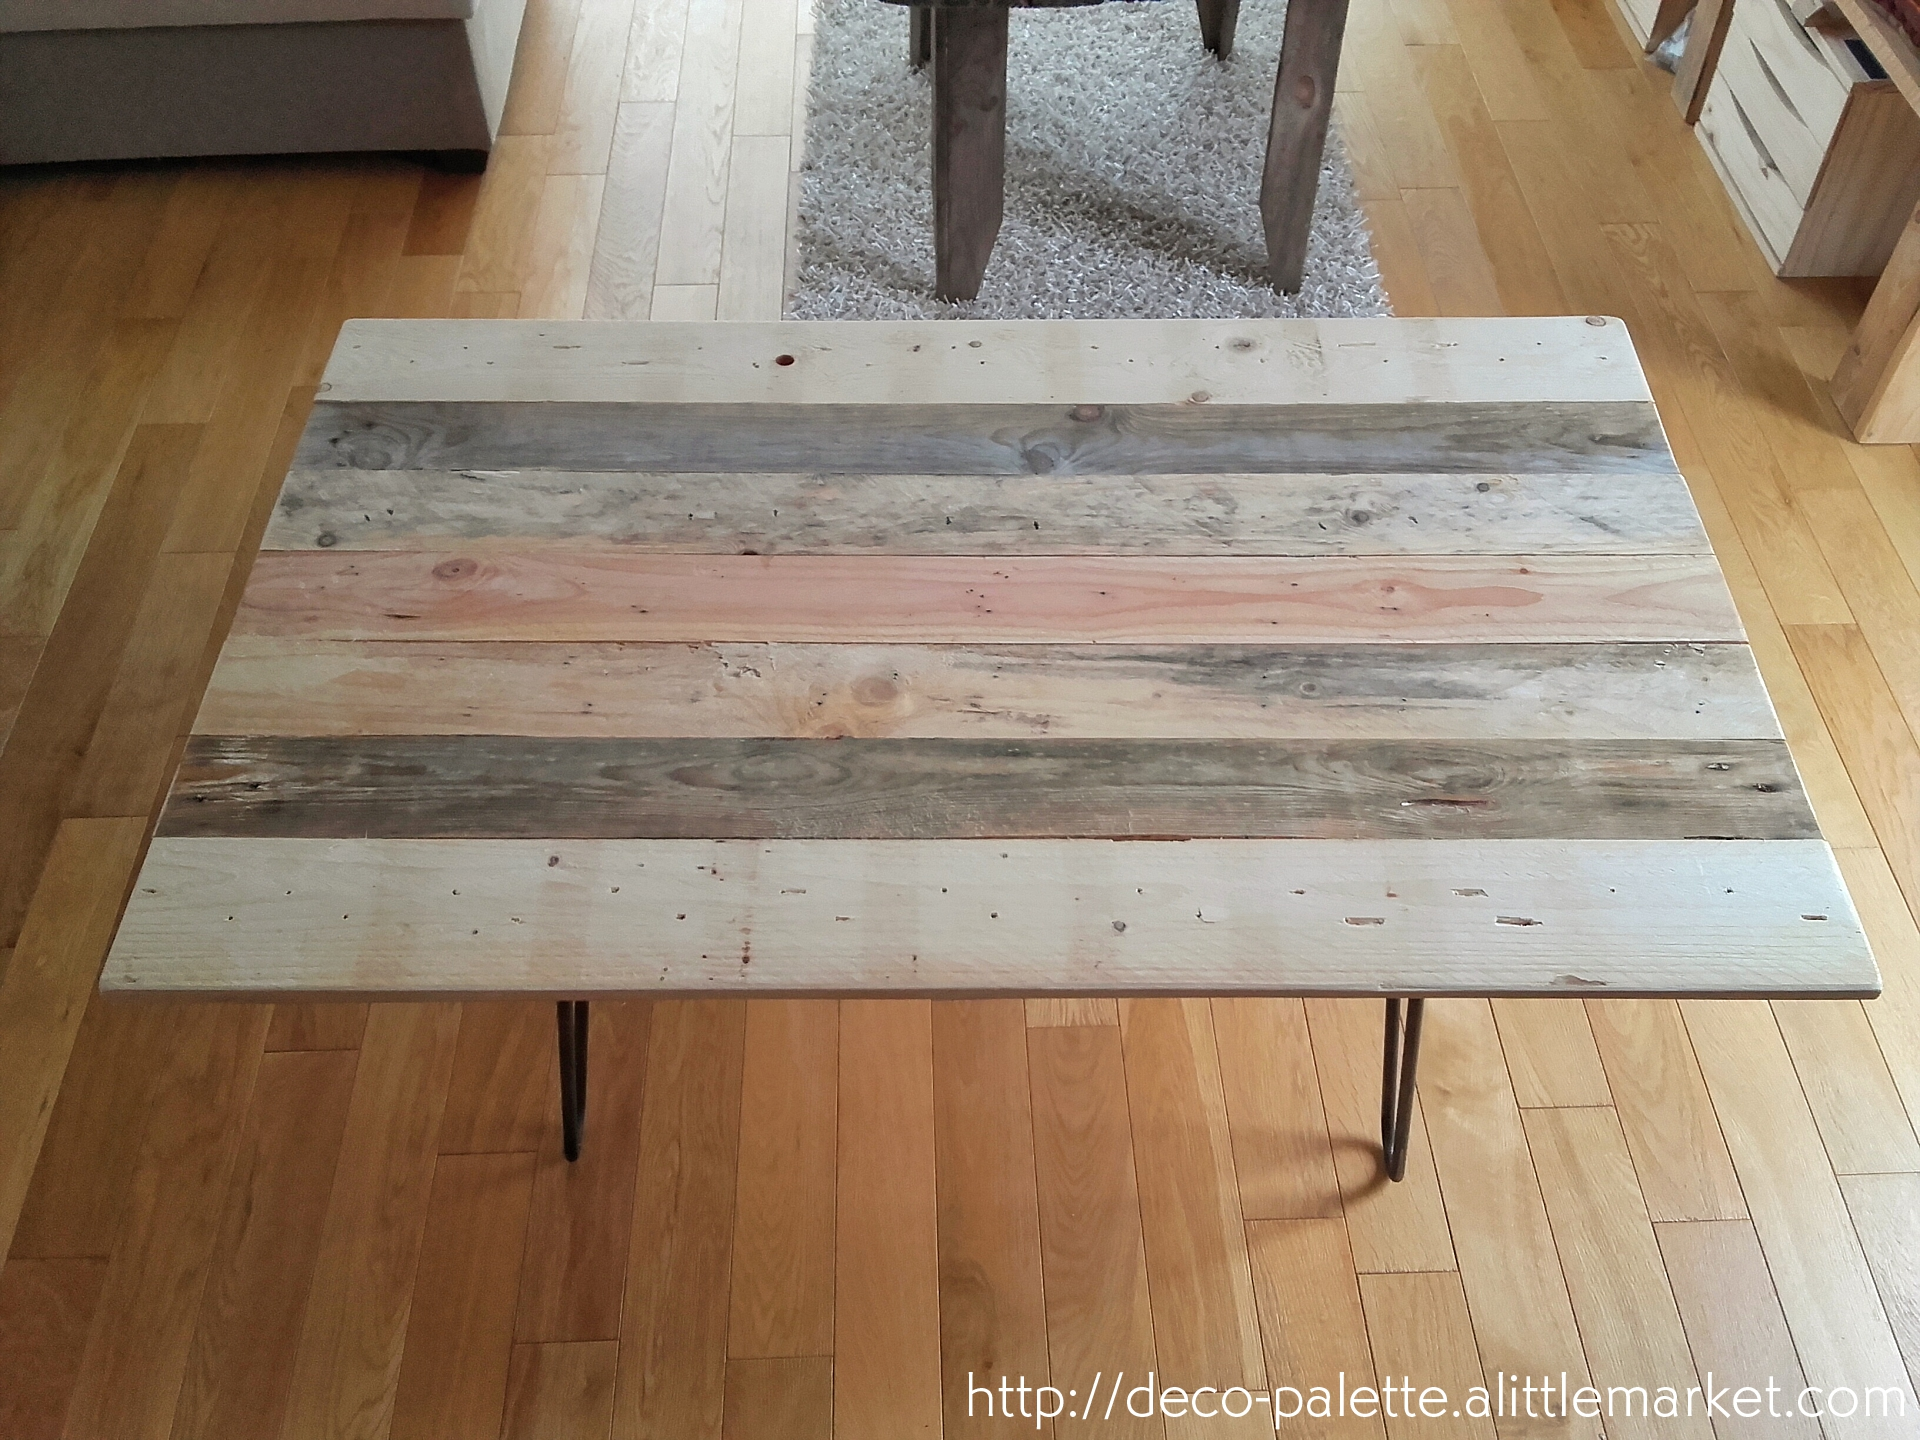 Palette transformee en table basse id es de design for Table basse palette